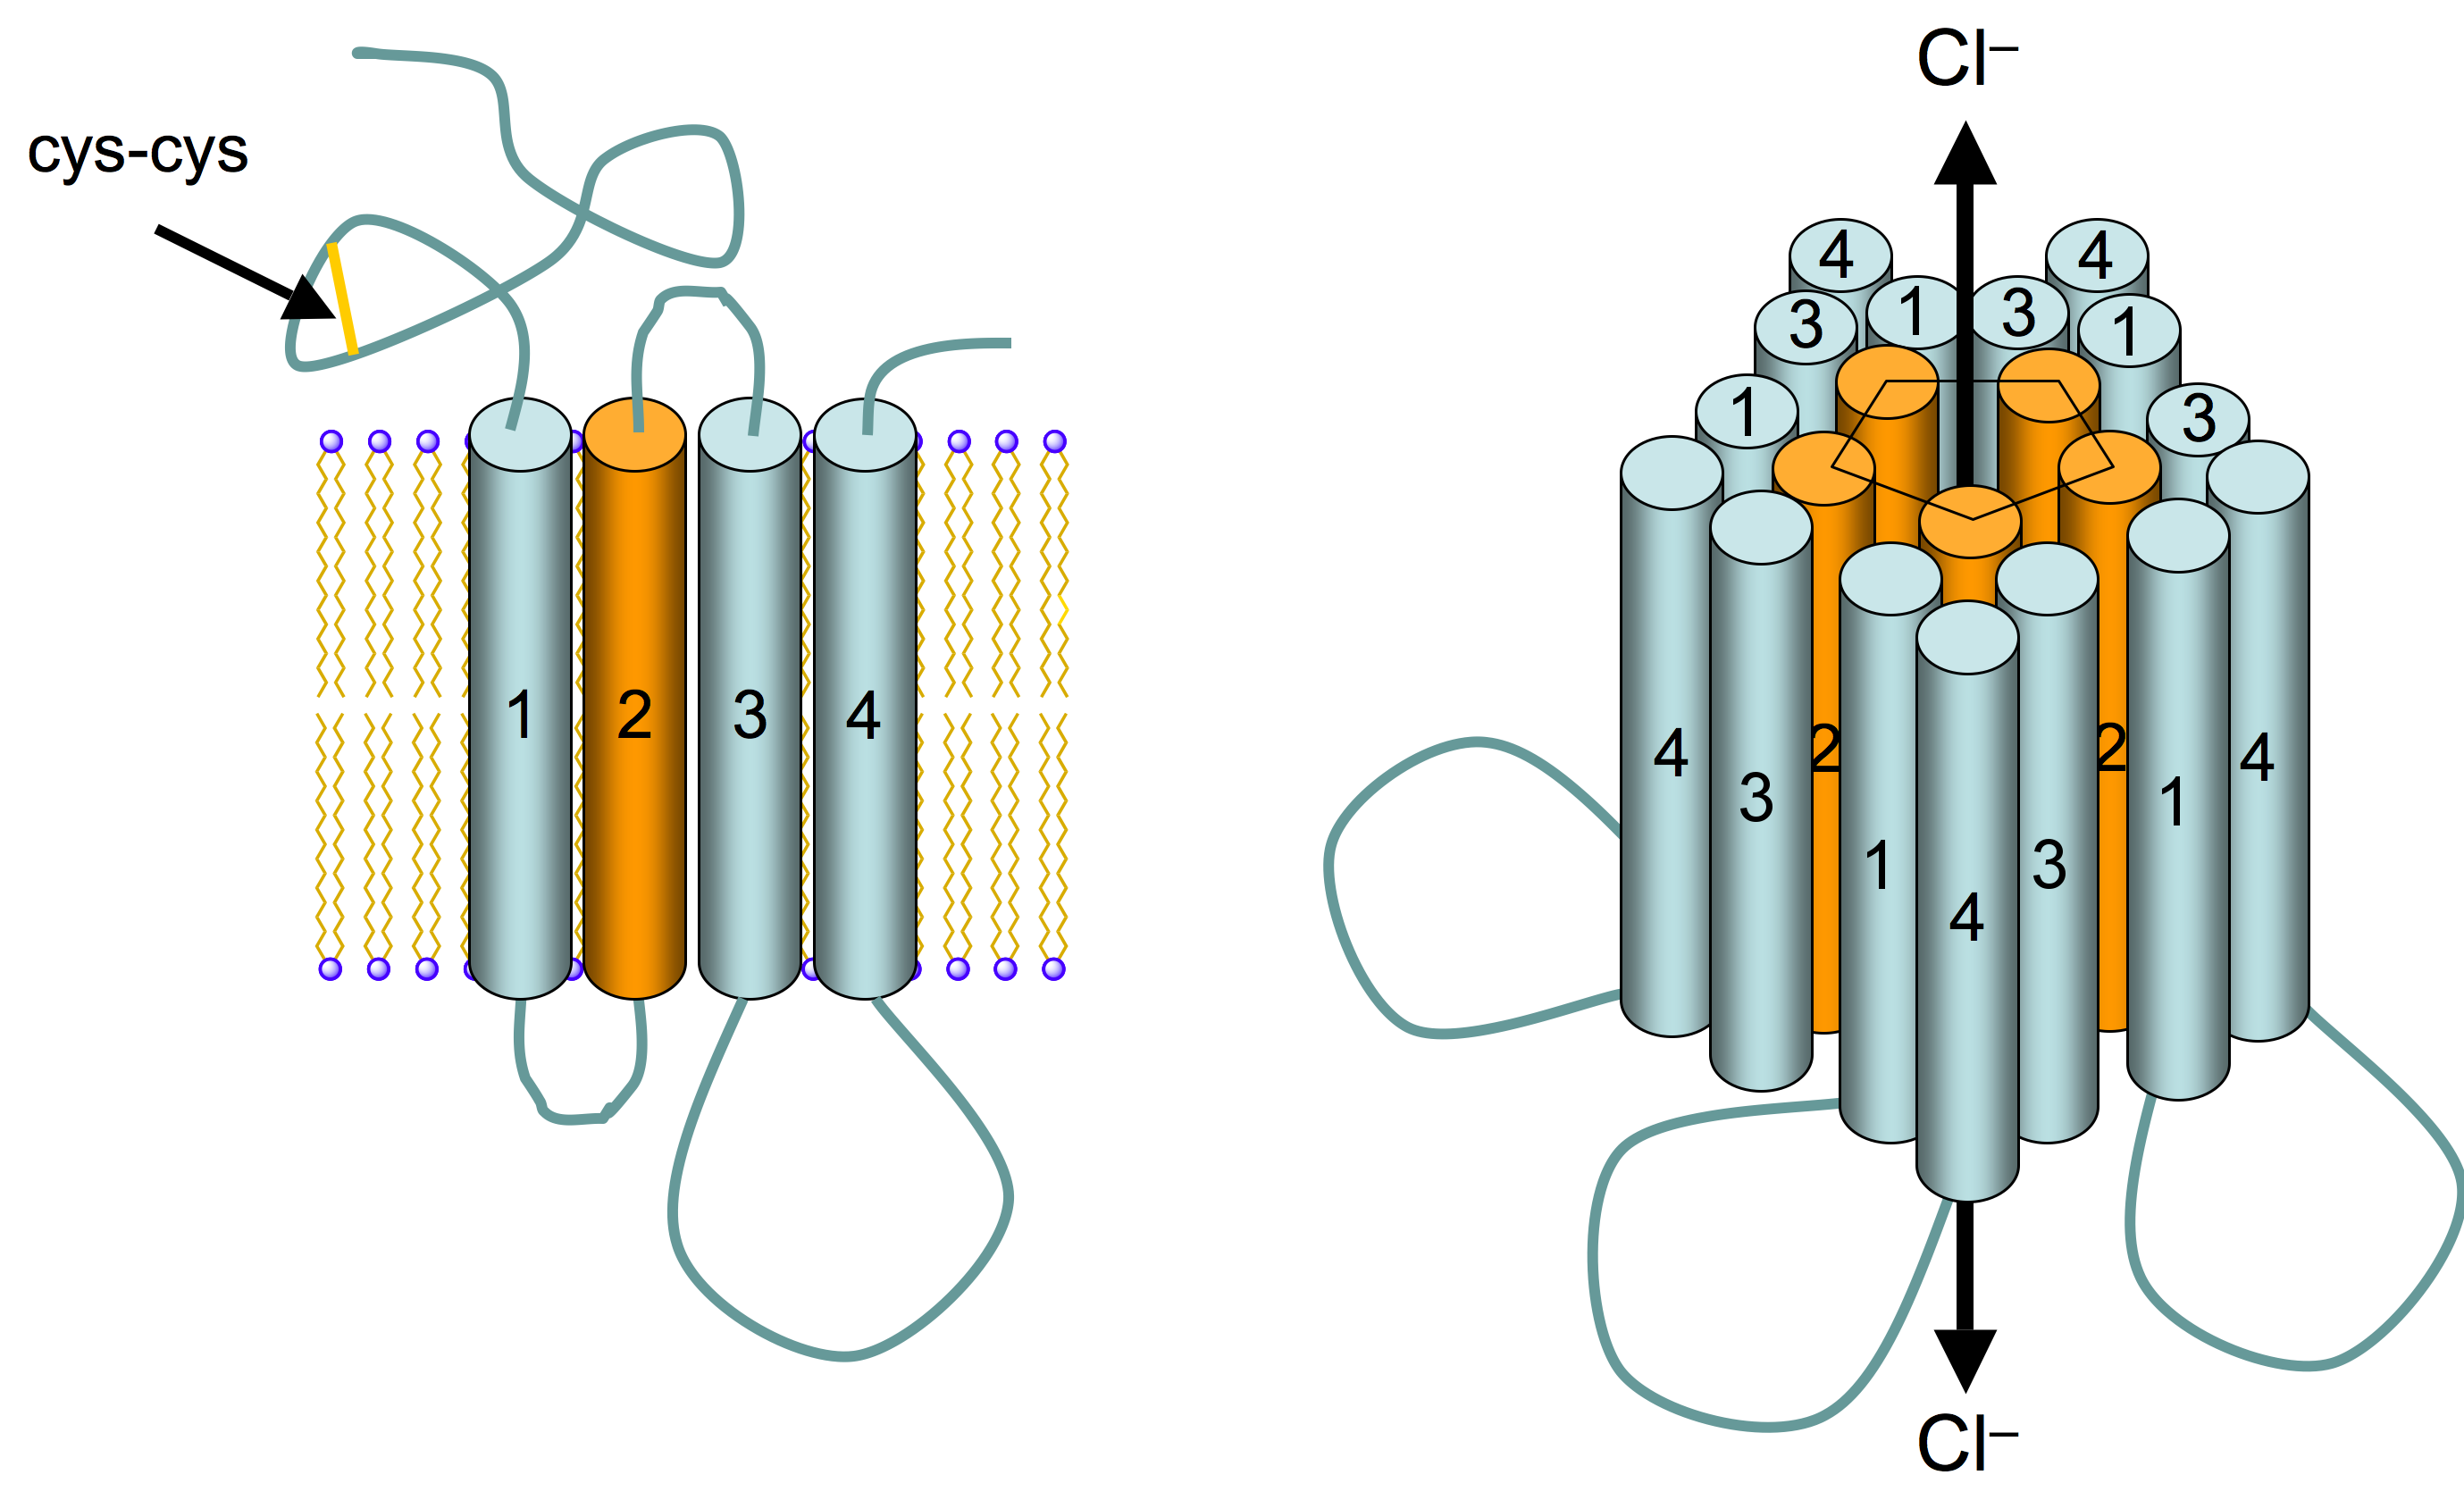 http://upload.wikimedia.org/wikipedia/commons/0/06/GABAA_receptor_schematic.png